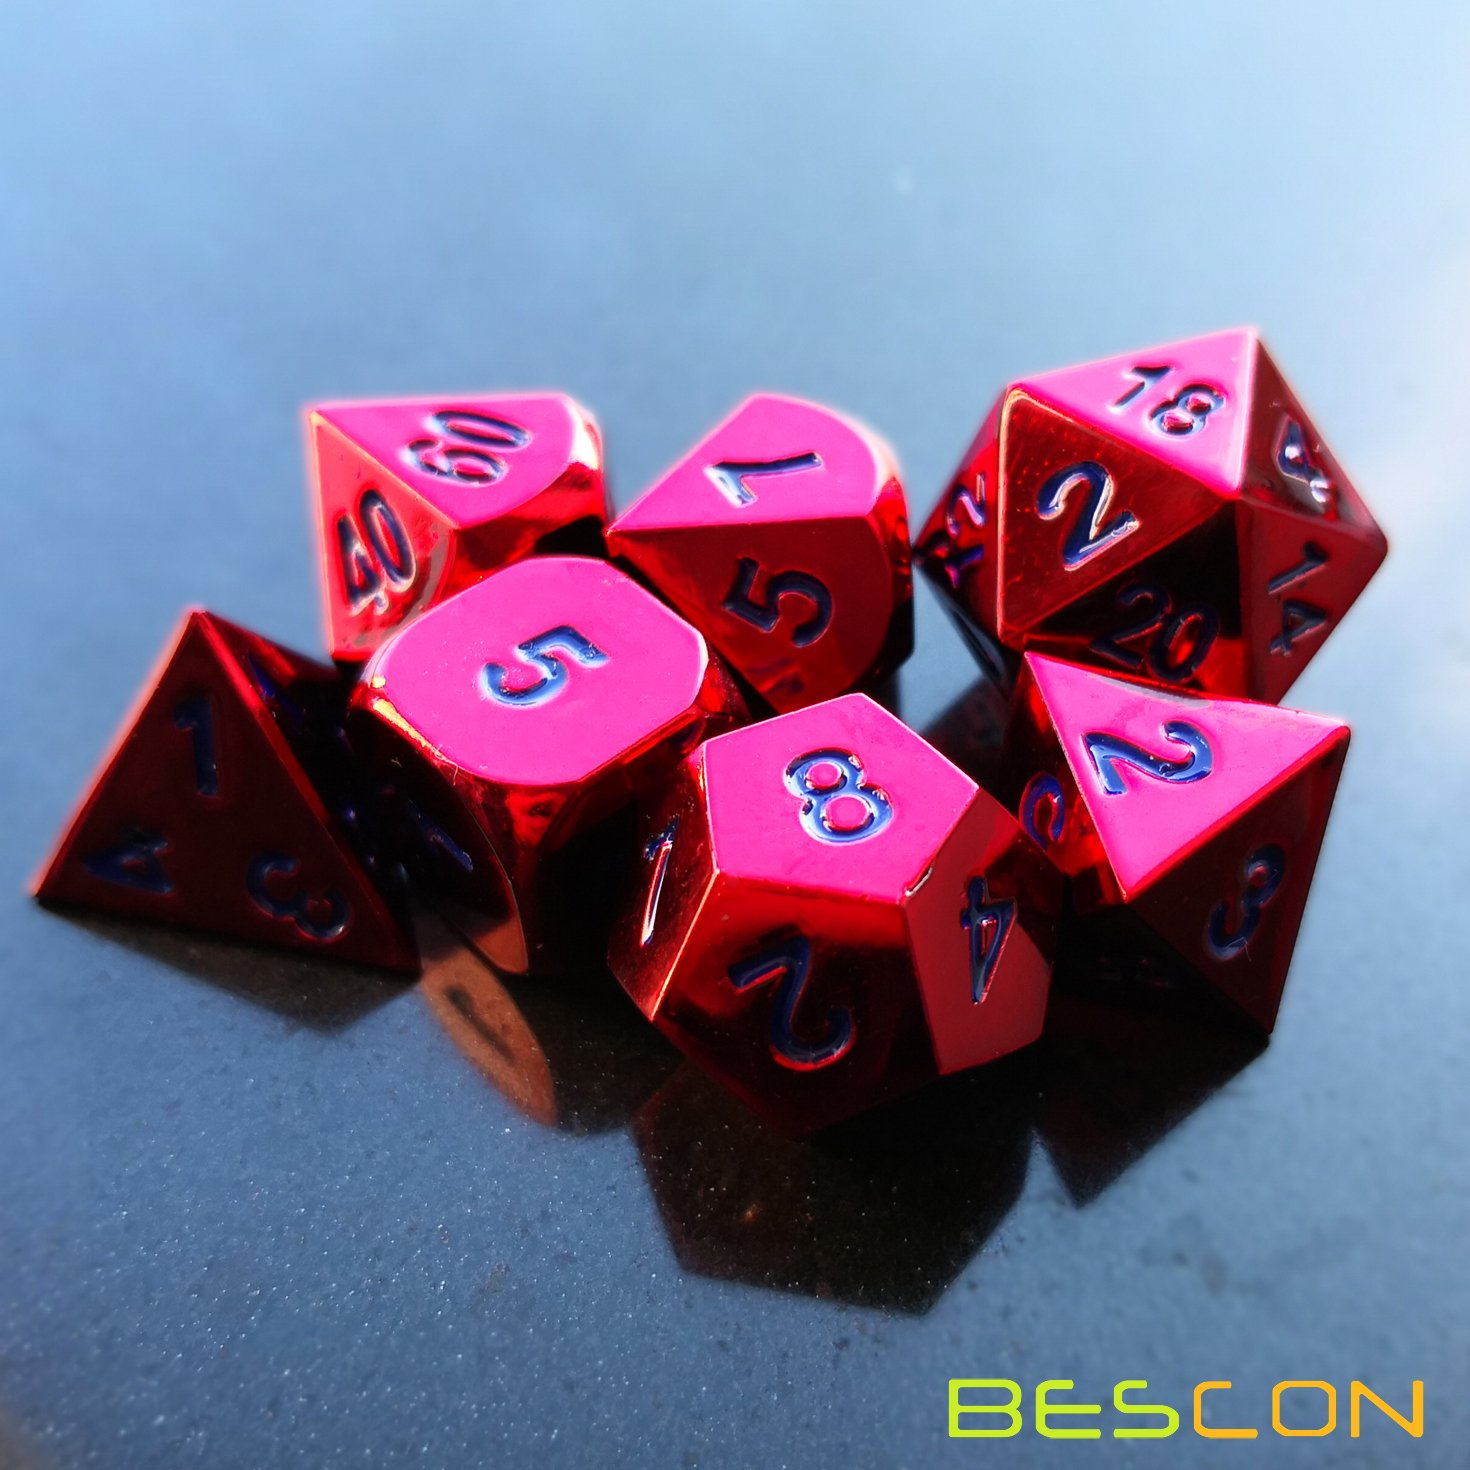 Metal RPG Role Playing Game Dice Set BESCON DICE Bescon 7pcs Set Heavy Duty Metal Dice Set Glossed Color of Wine Colorful Solid Metallic Polyhedral D/&D Dice Set Wine Red with Royal Blue Numbers